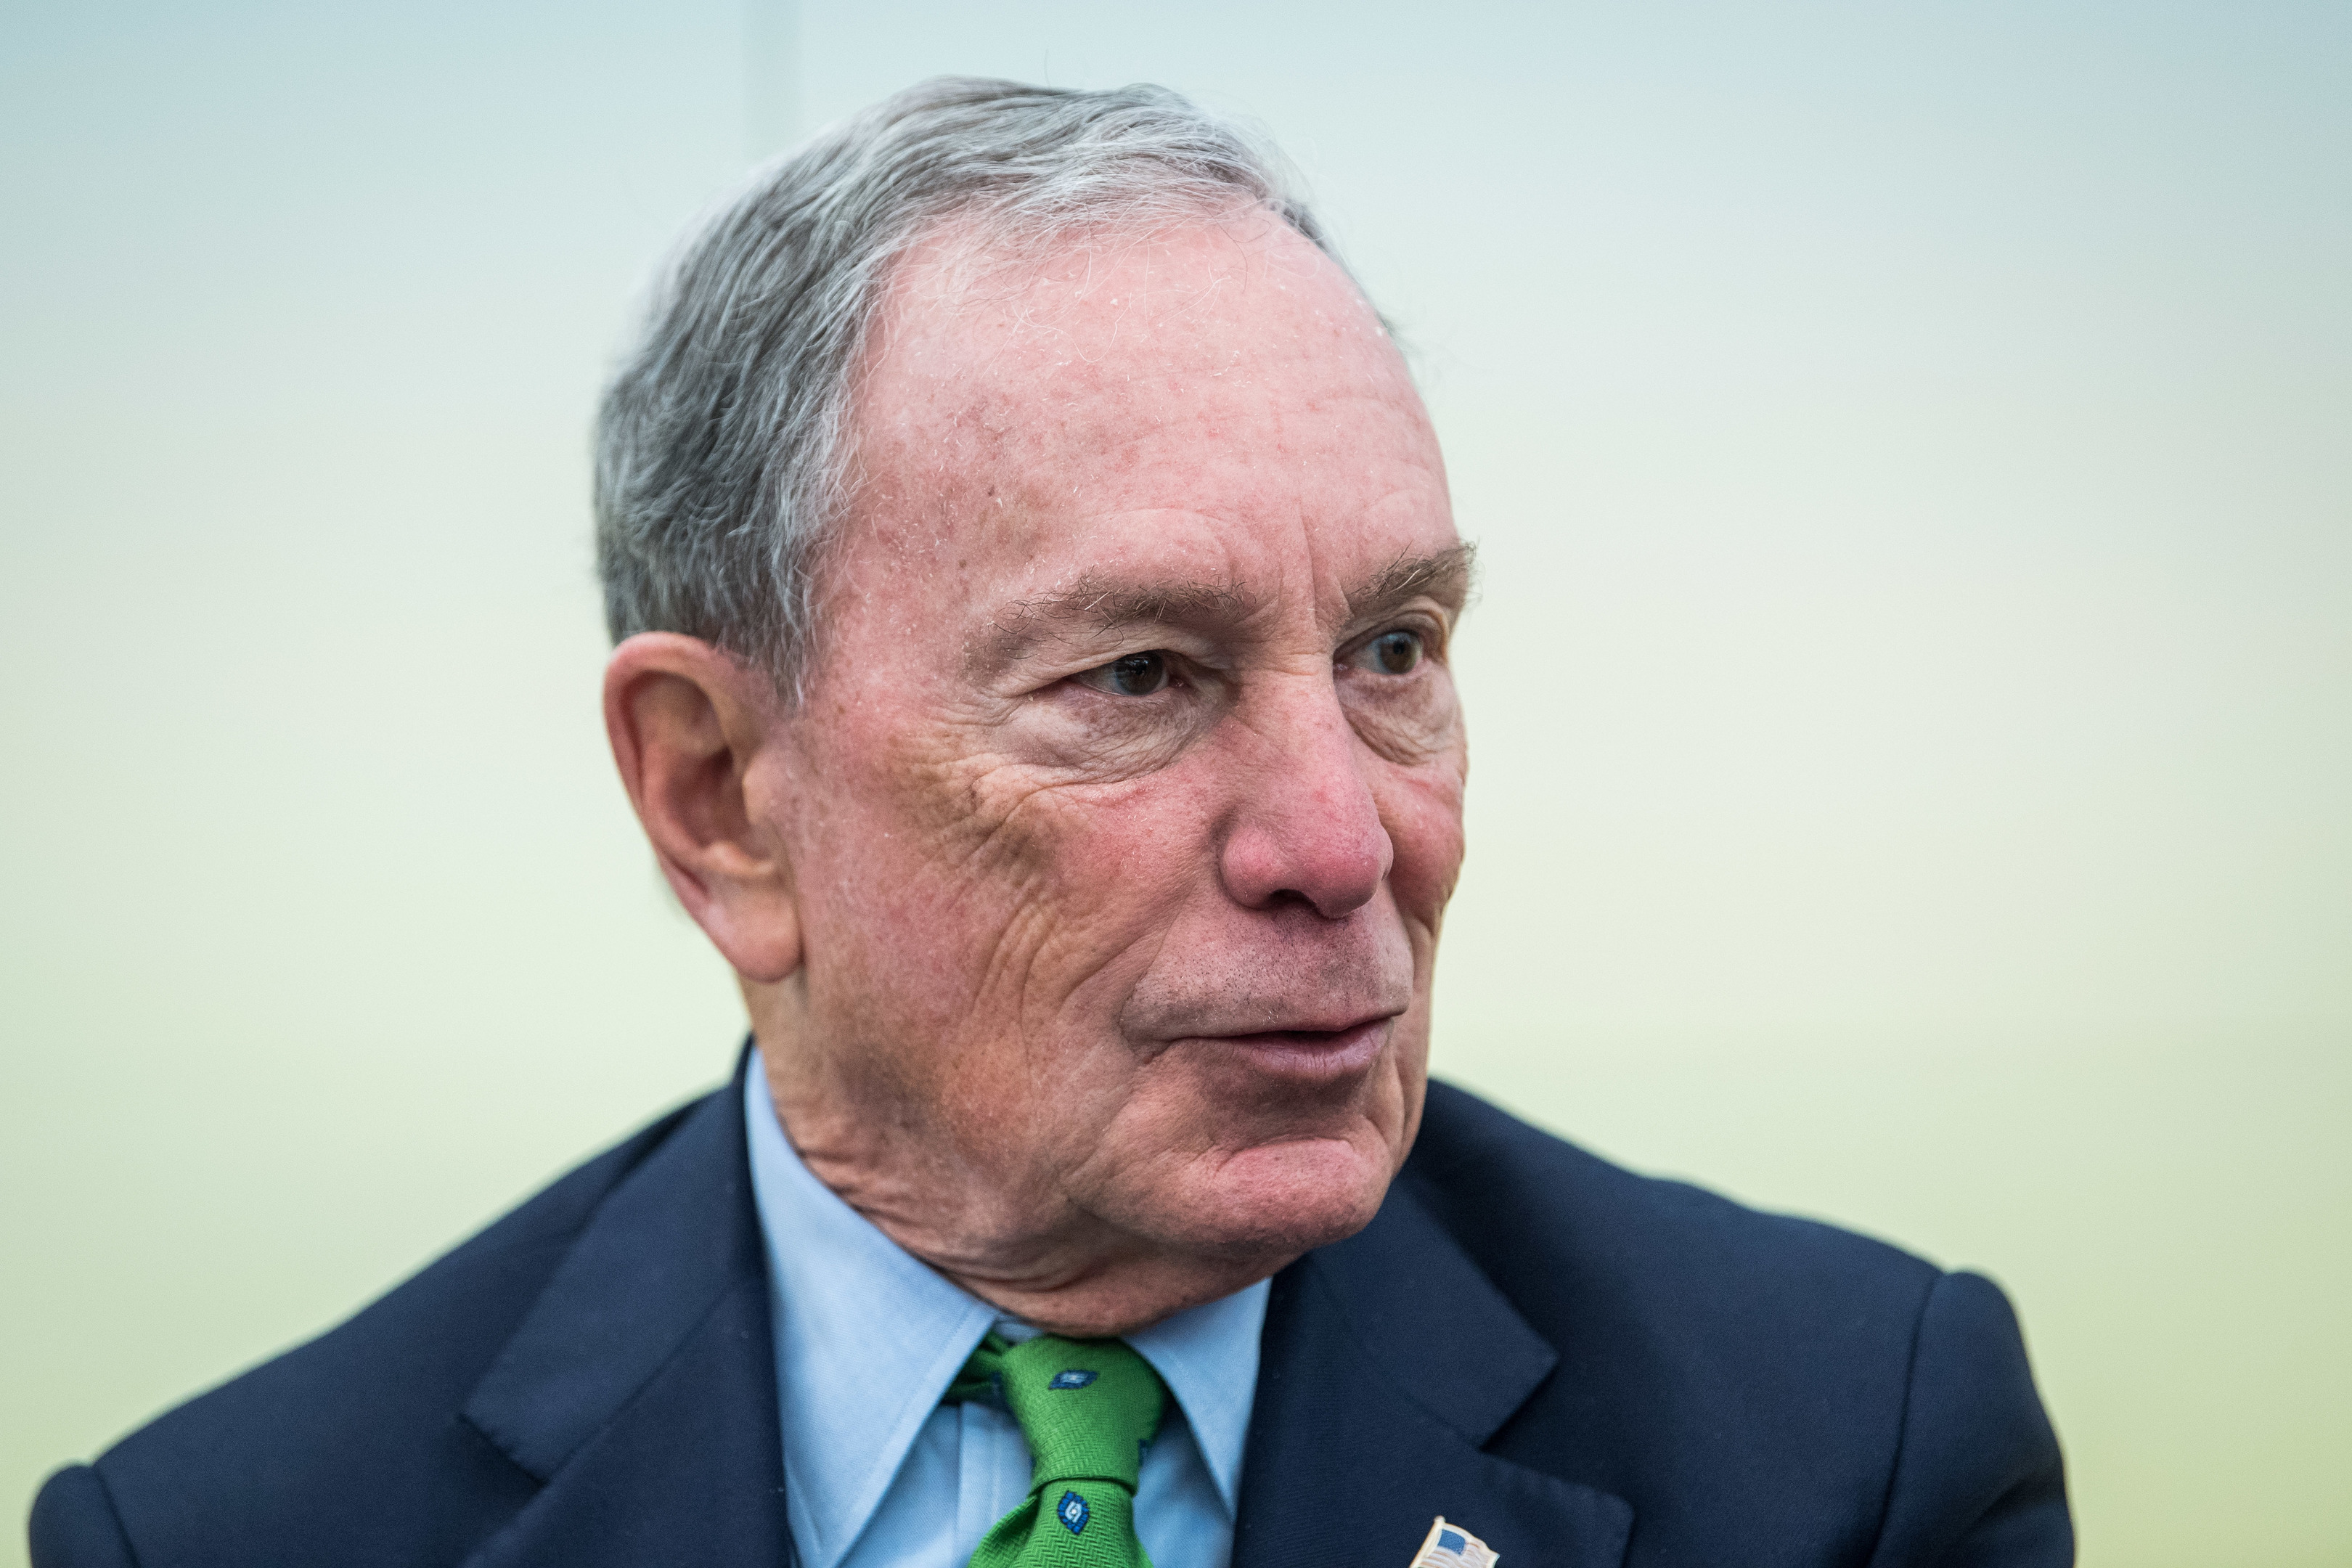 American businessman Michael Bloomberg is seen prior to a discussion at the America's Pledge launch event at the U.S.